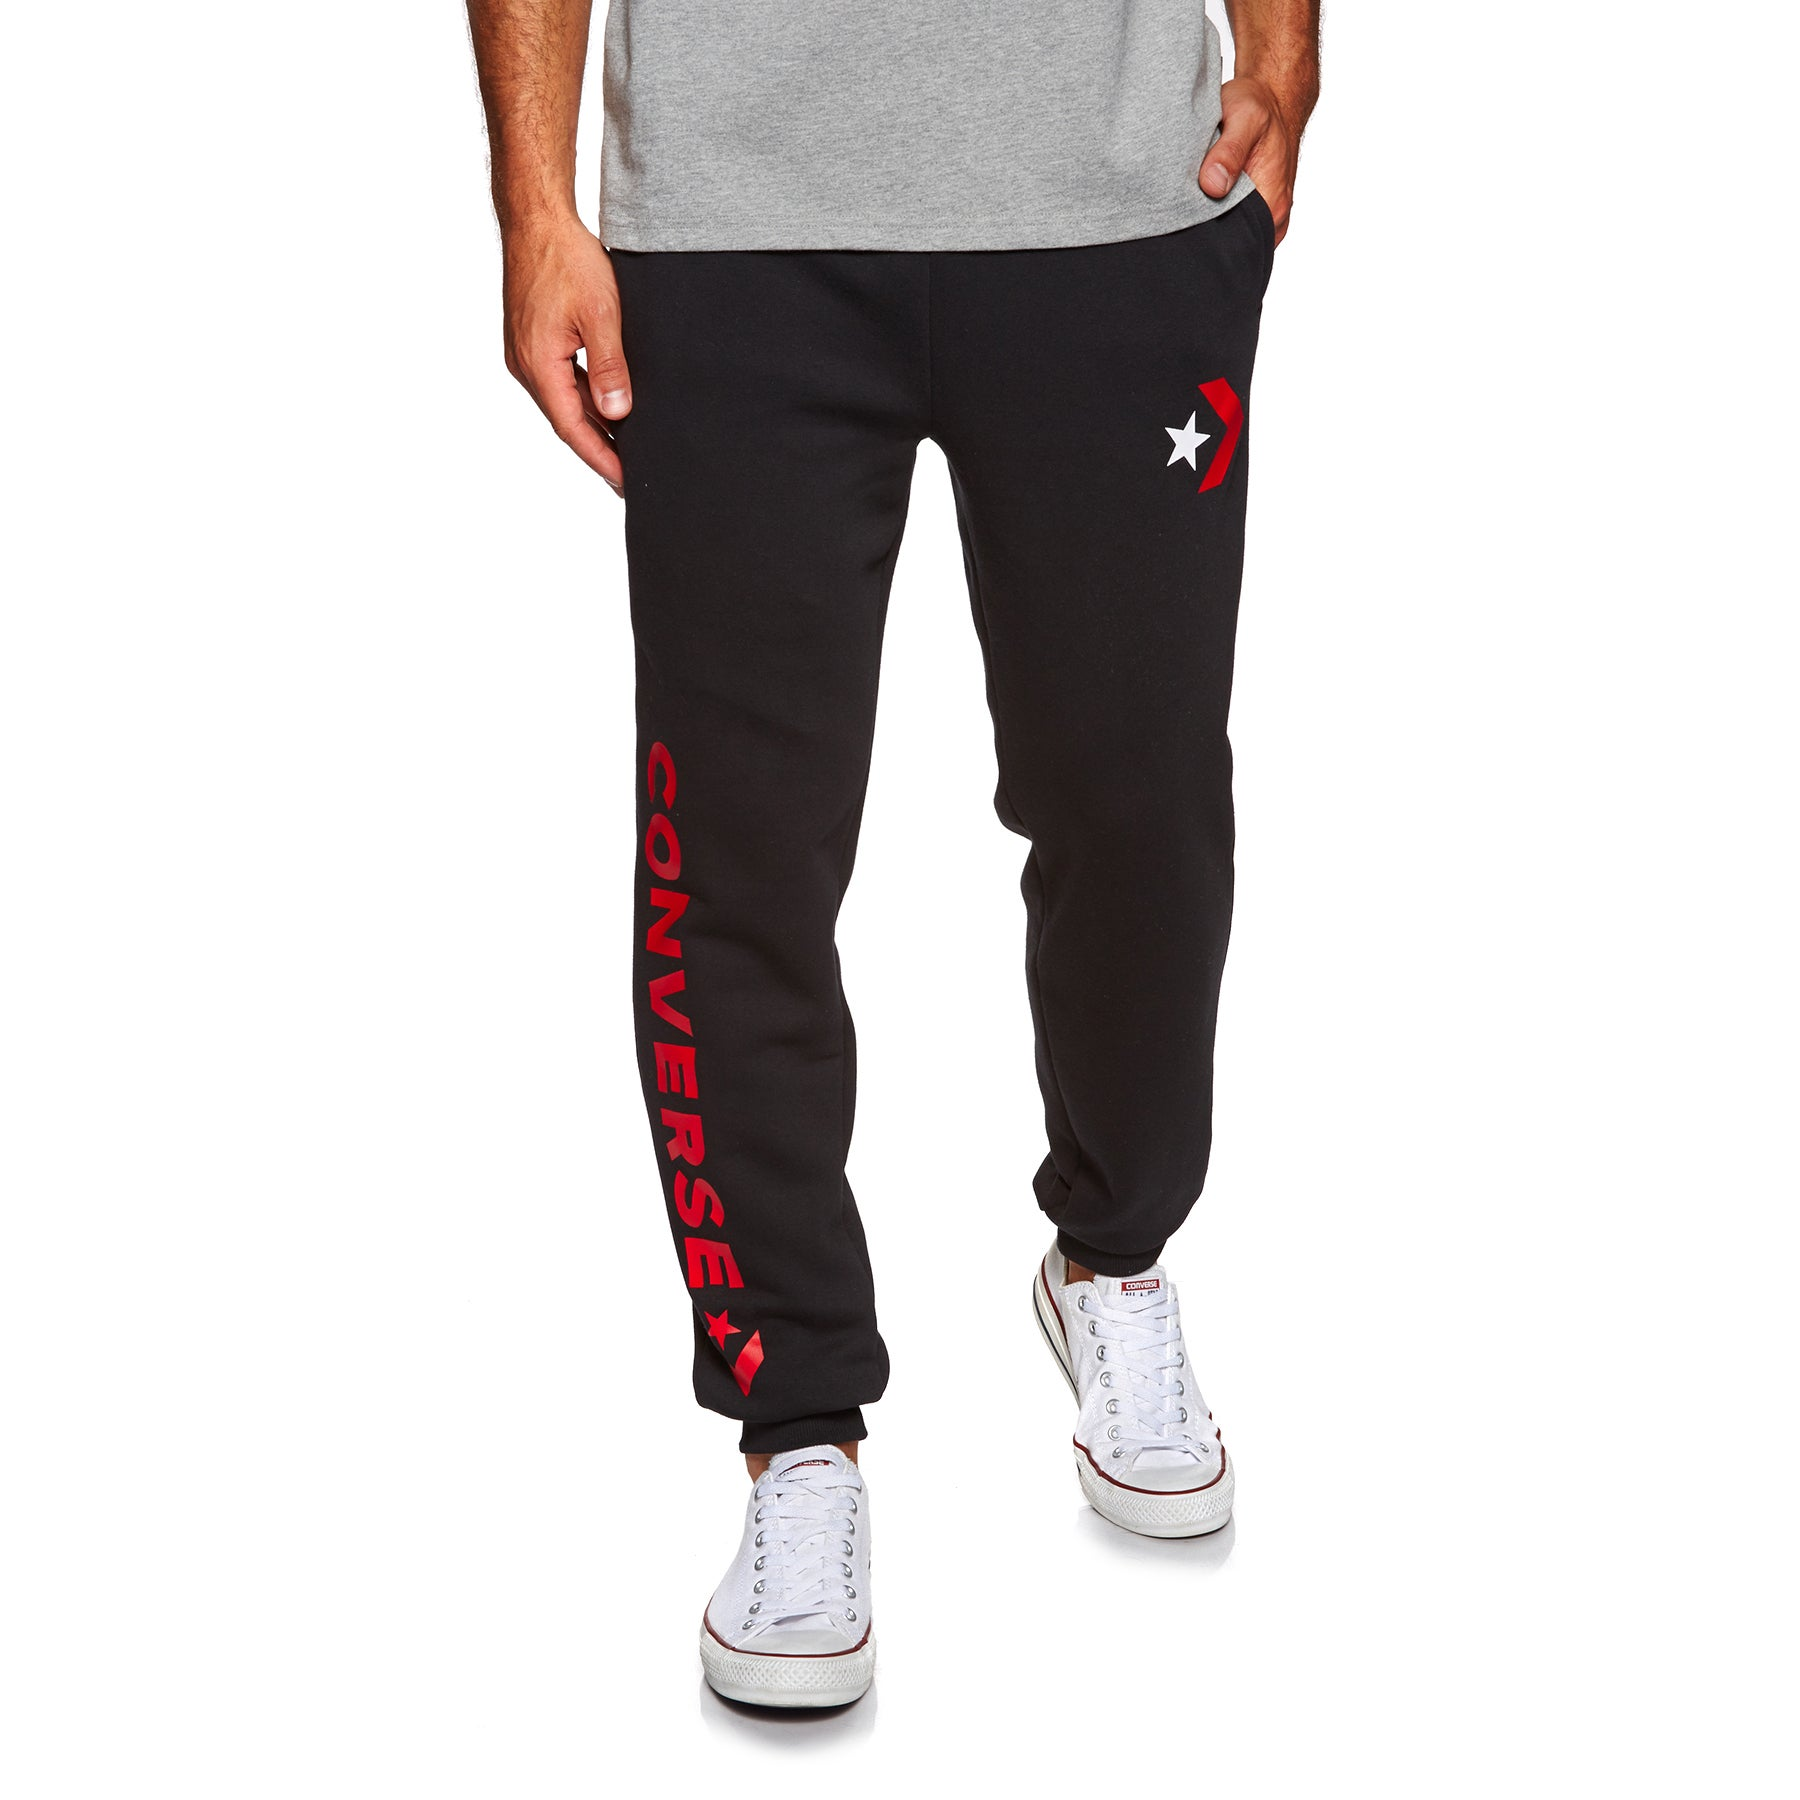 dea89ba6ee55 Converse Mens Star Chevron Graphic Jogging Pants available from Surfdome